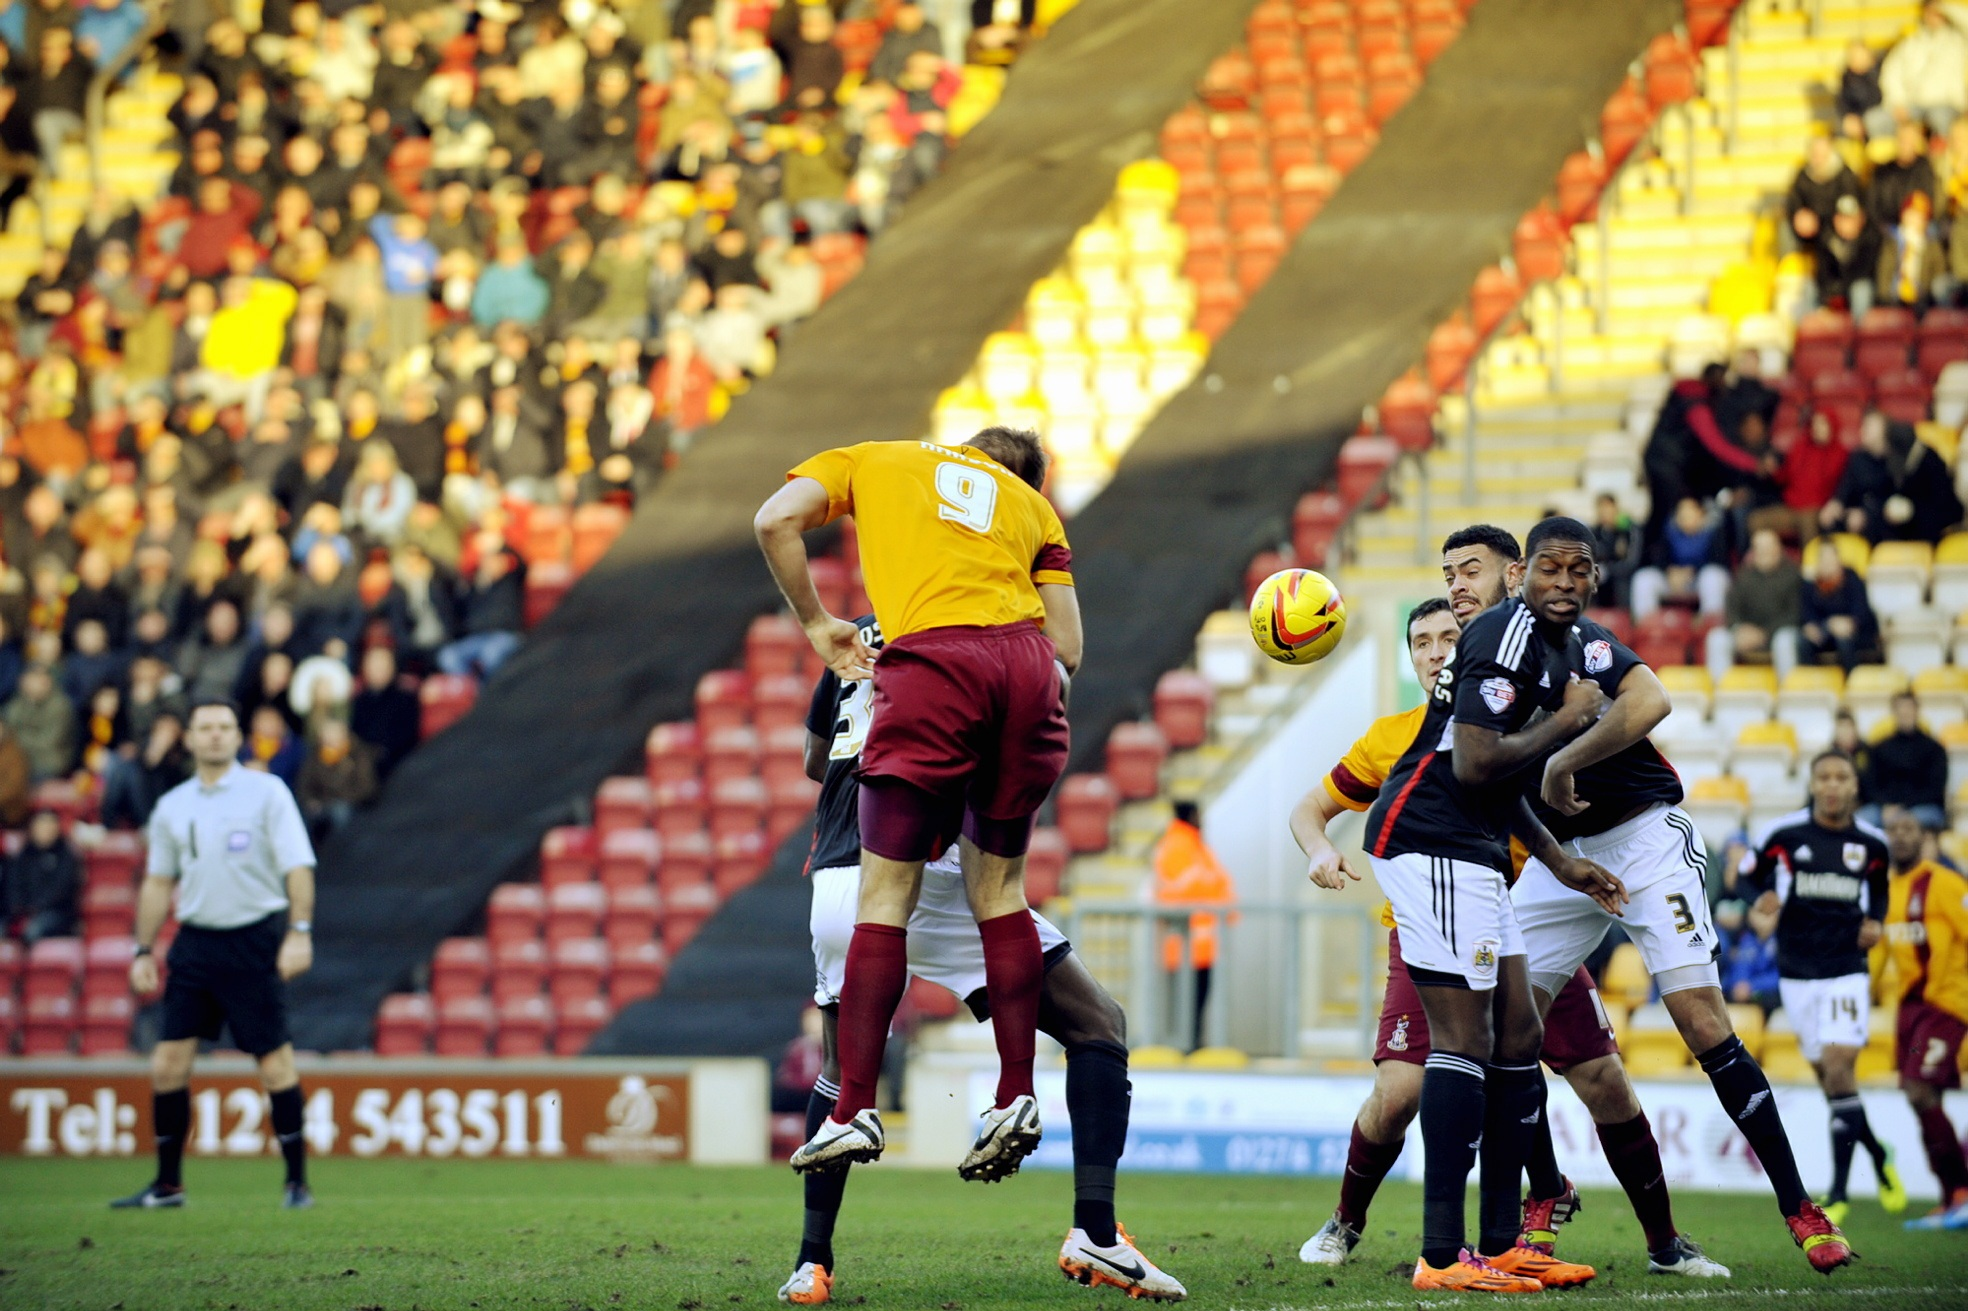 Hanson back to his best to kick off new Bradford City era